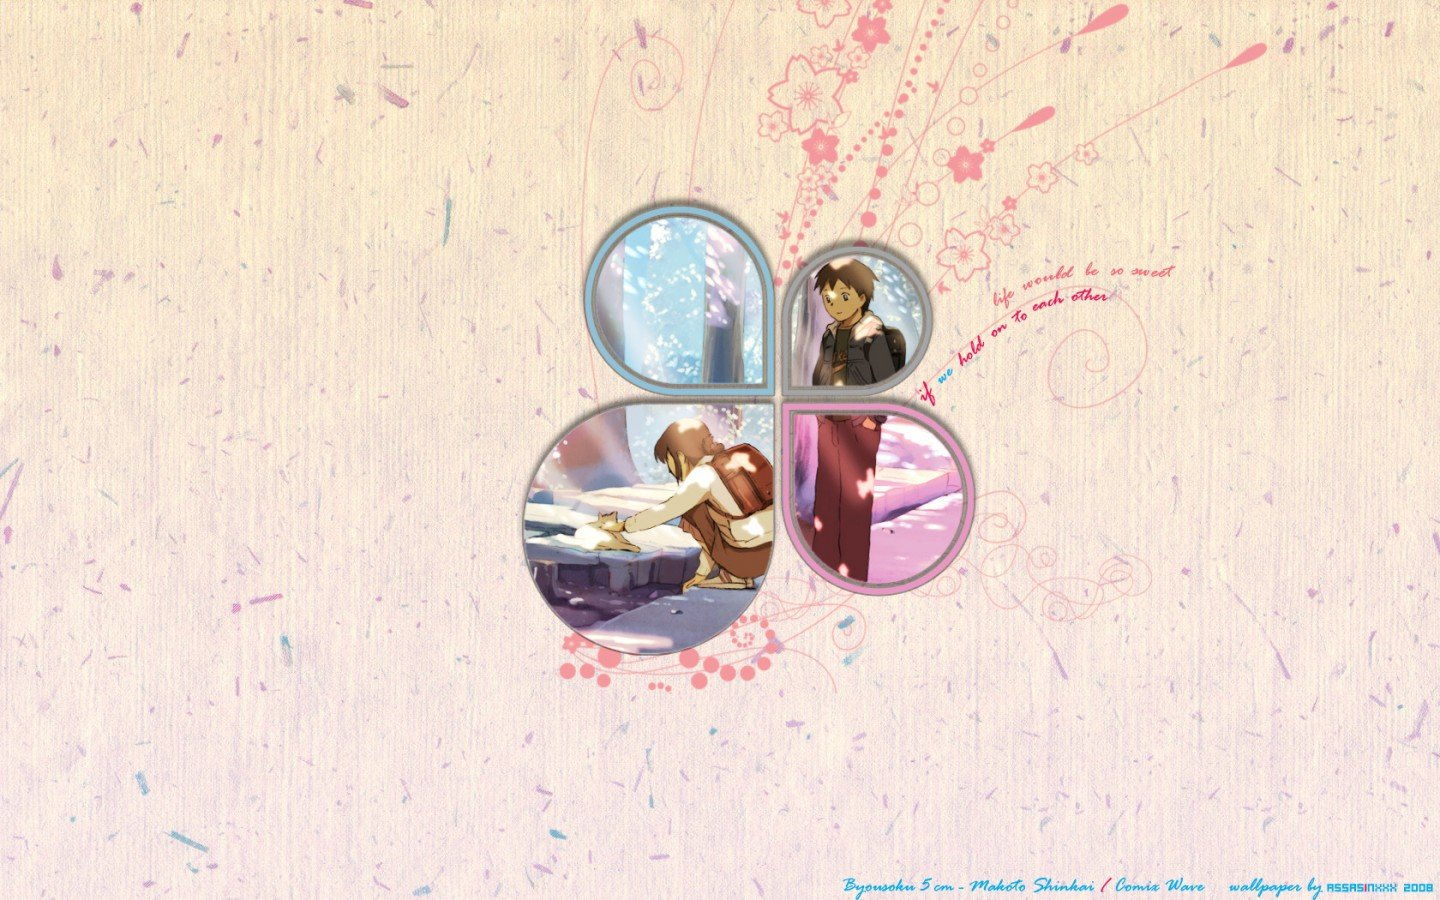 Download hd 1440x900 5 (cm) Centimeters Per Second desktop wallpaper ID:90152 for free